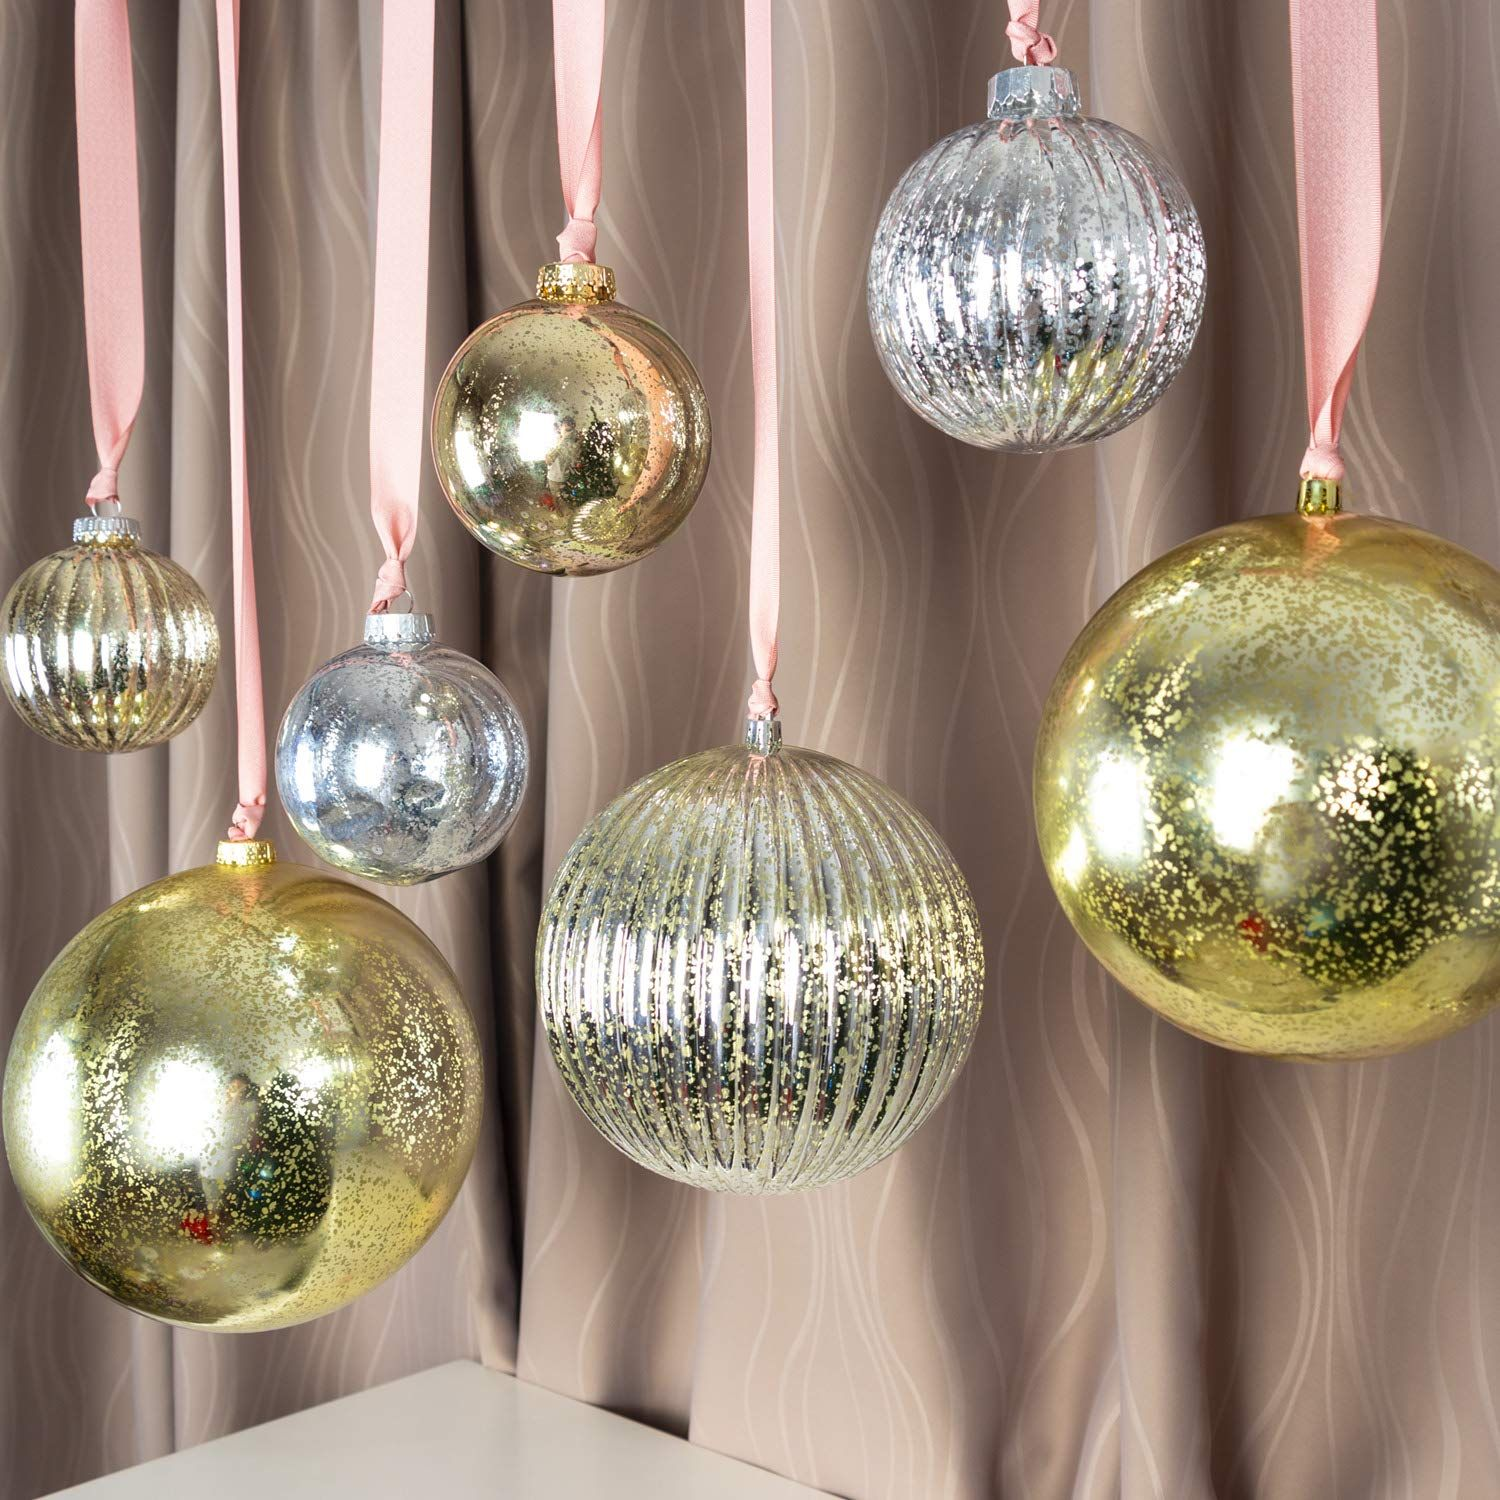 Ki Store Christmas Ball Ornaments Hanging Tree Ornament Decorations 4a Large Shatterproof Vintage Mercury Balls Ball Ornaments Christmas Balls Ornament Decor